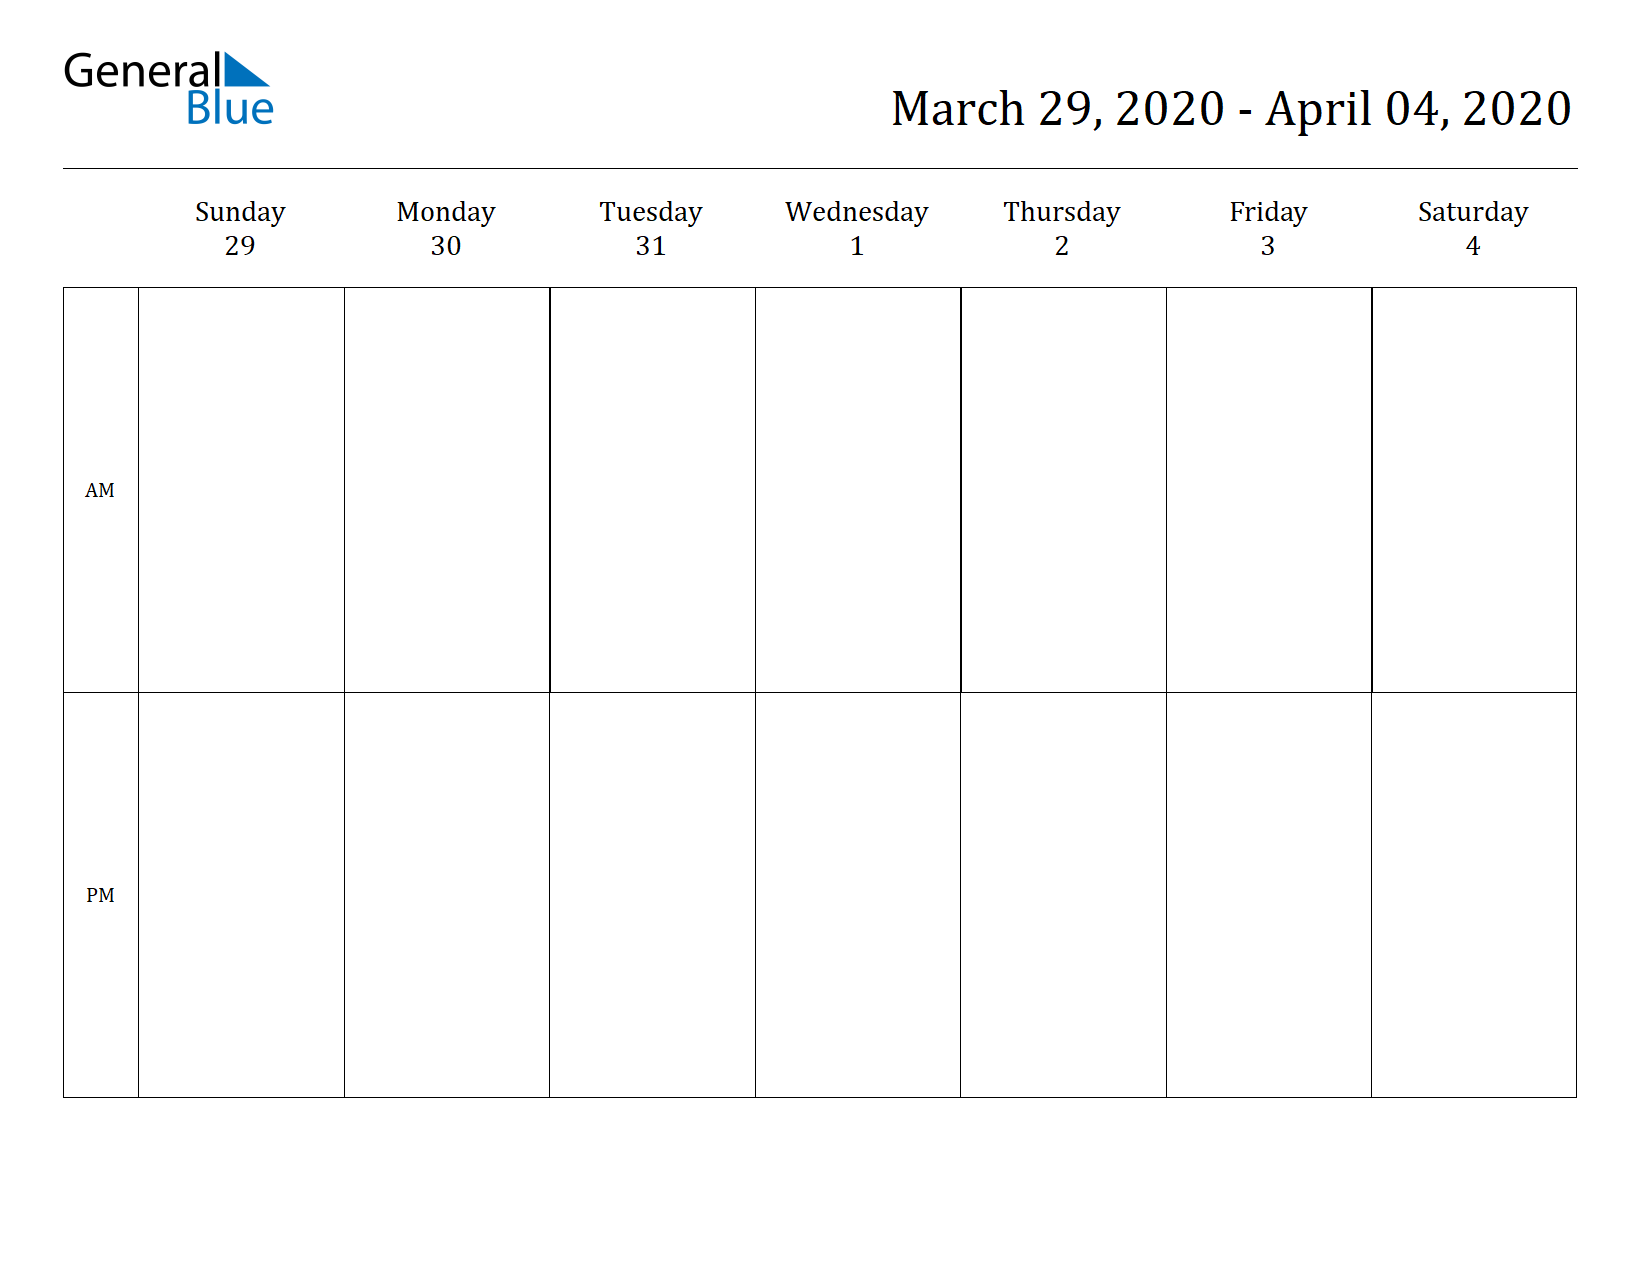 Weekly Calendar for Mar 29, 2020 to Apr 04, 2020